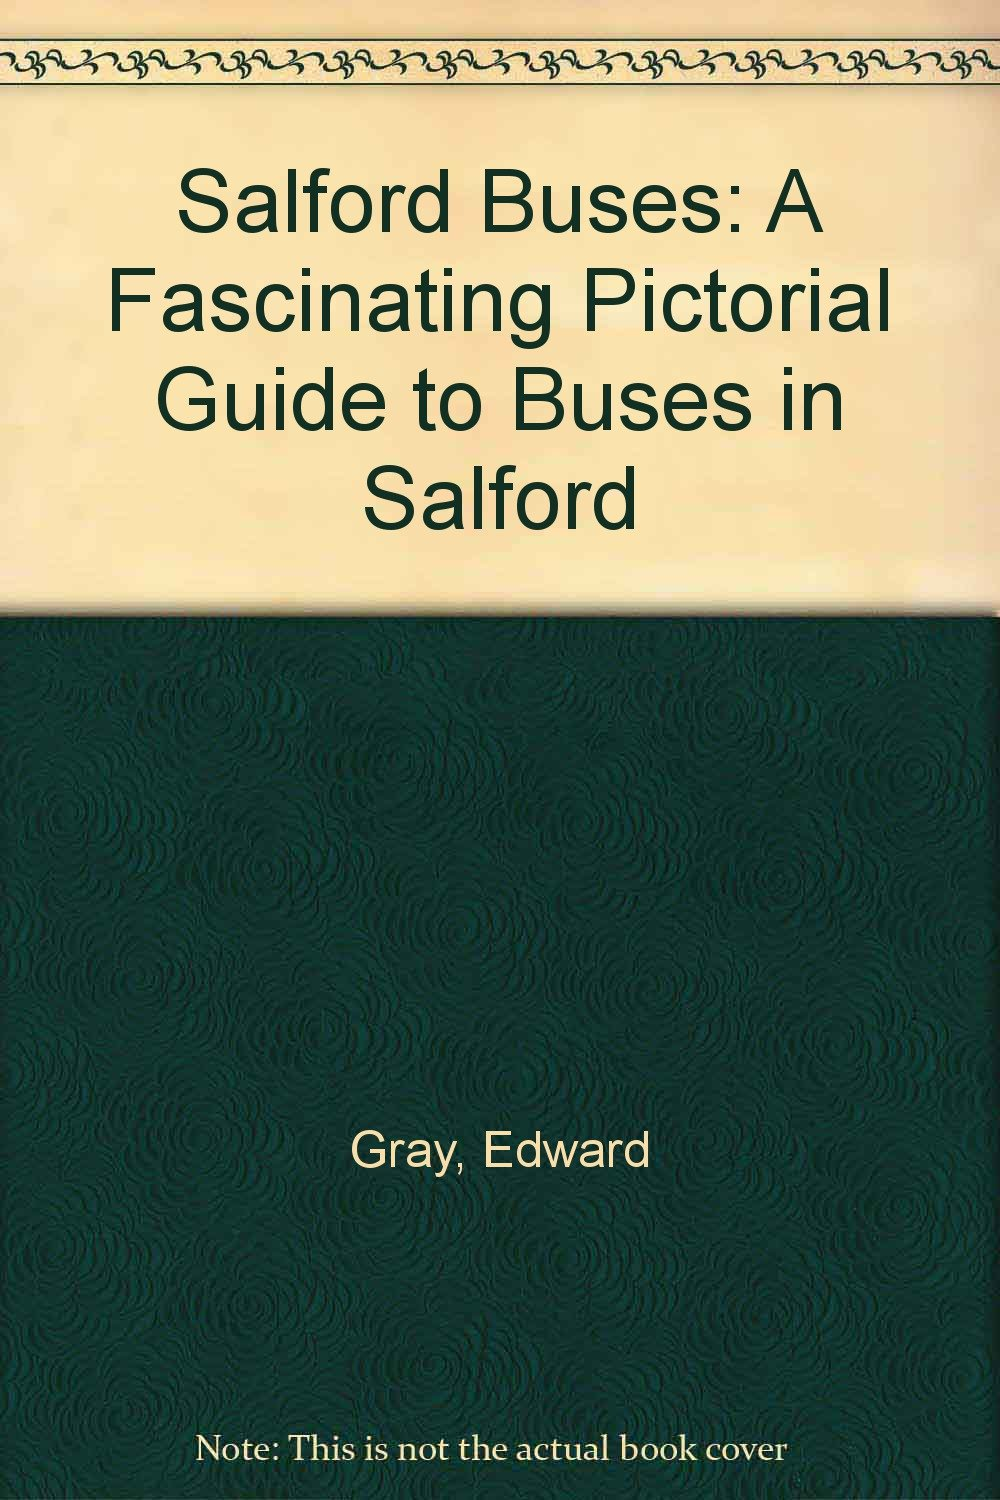 Salford Buses: A Fascinating Pictorial Guide to Buses in Salford